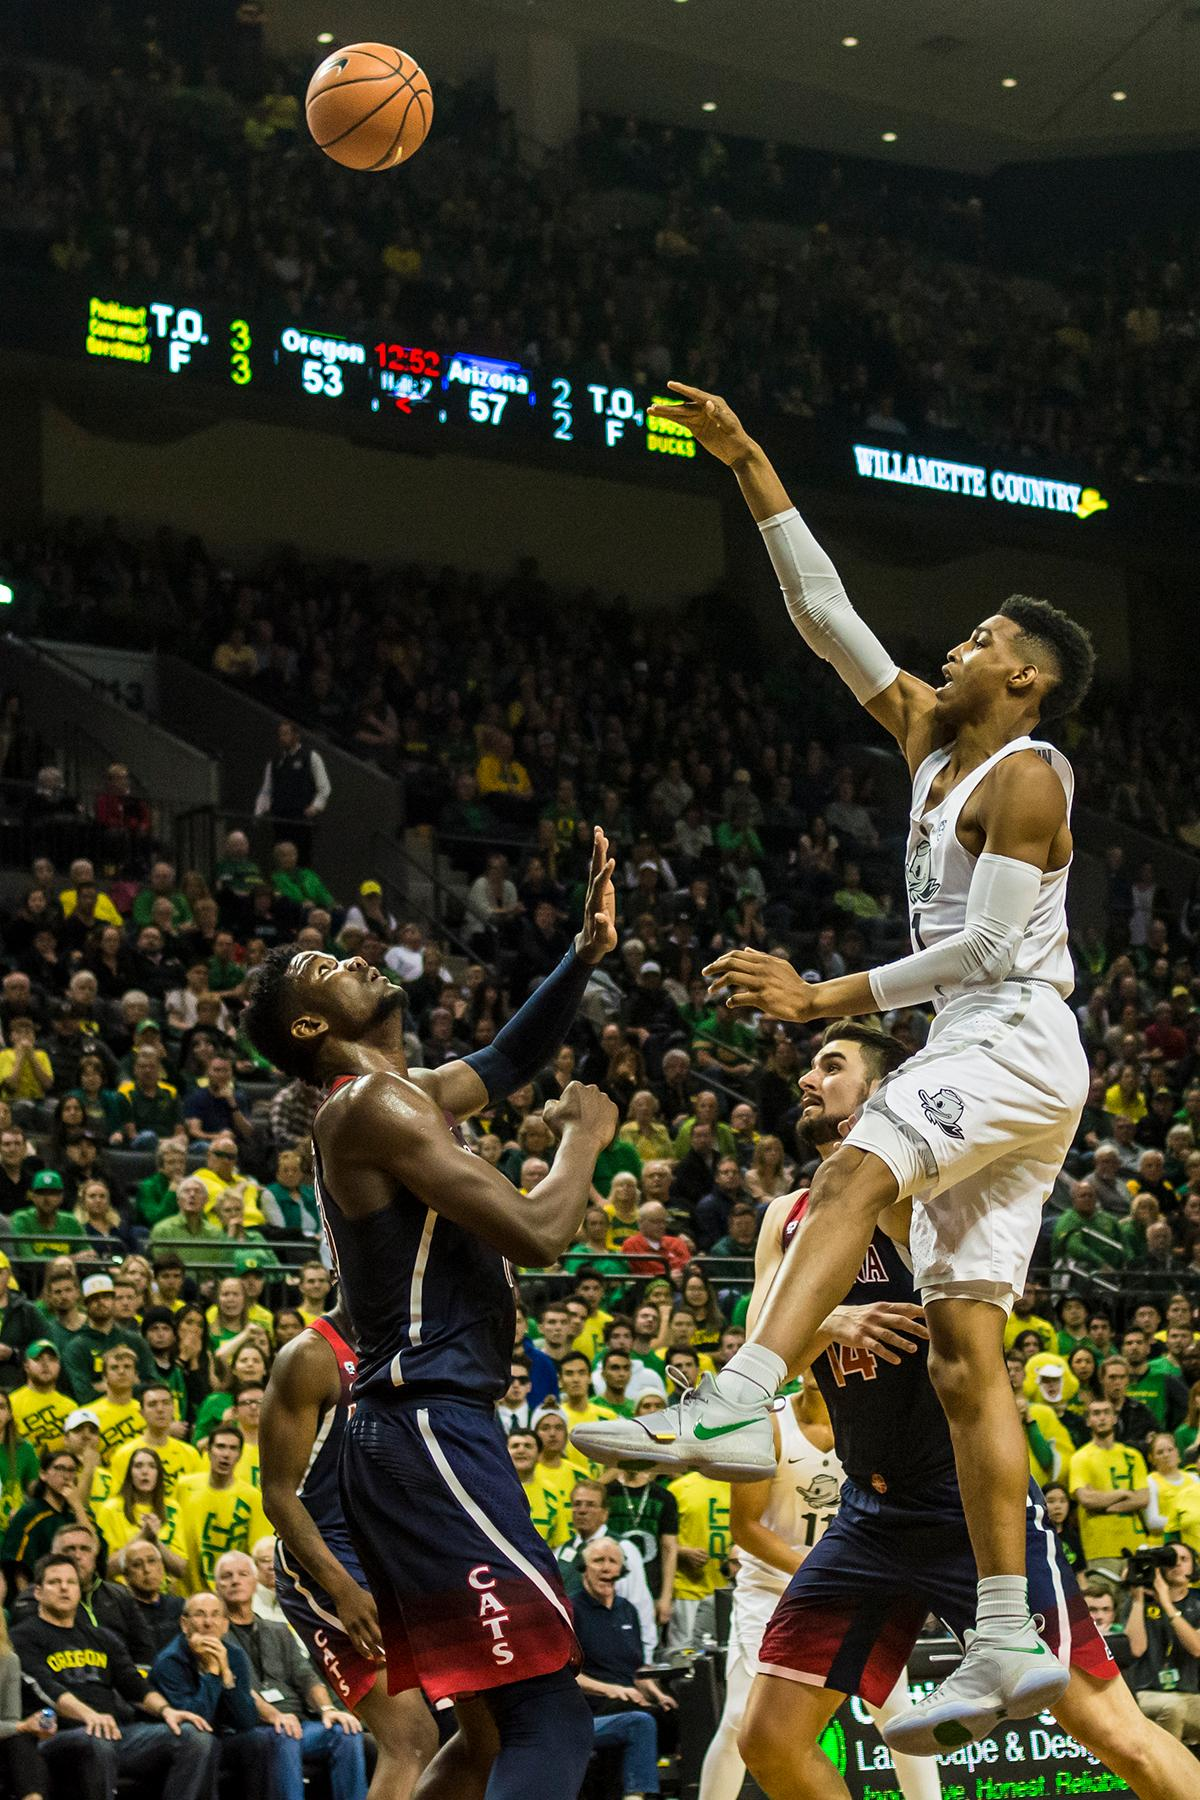 Oregon's Kenny Wooten (1) shoots over Arizona's DeAndre Ayton in their matchup at Matthew Knight Arena Saturday. The Ducks upset the fourteenth ranked Wildcats 98-93 in a stunning overtime win in front of a packed house of over 12,000 fans for their final home game to improve to a 19-10 (9-7 PAC-12) record on the season. Oregon will finish out regular season play on the road in Washington next week against Washington State on Thursday, then Washington on the following Saturday. (Photo by Colin Houck)